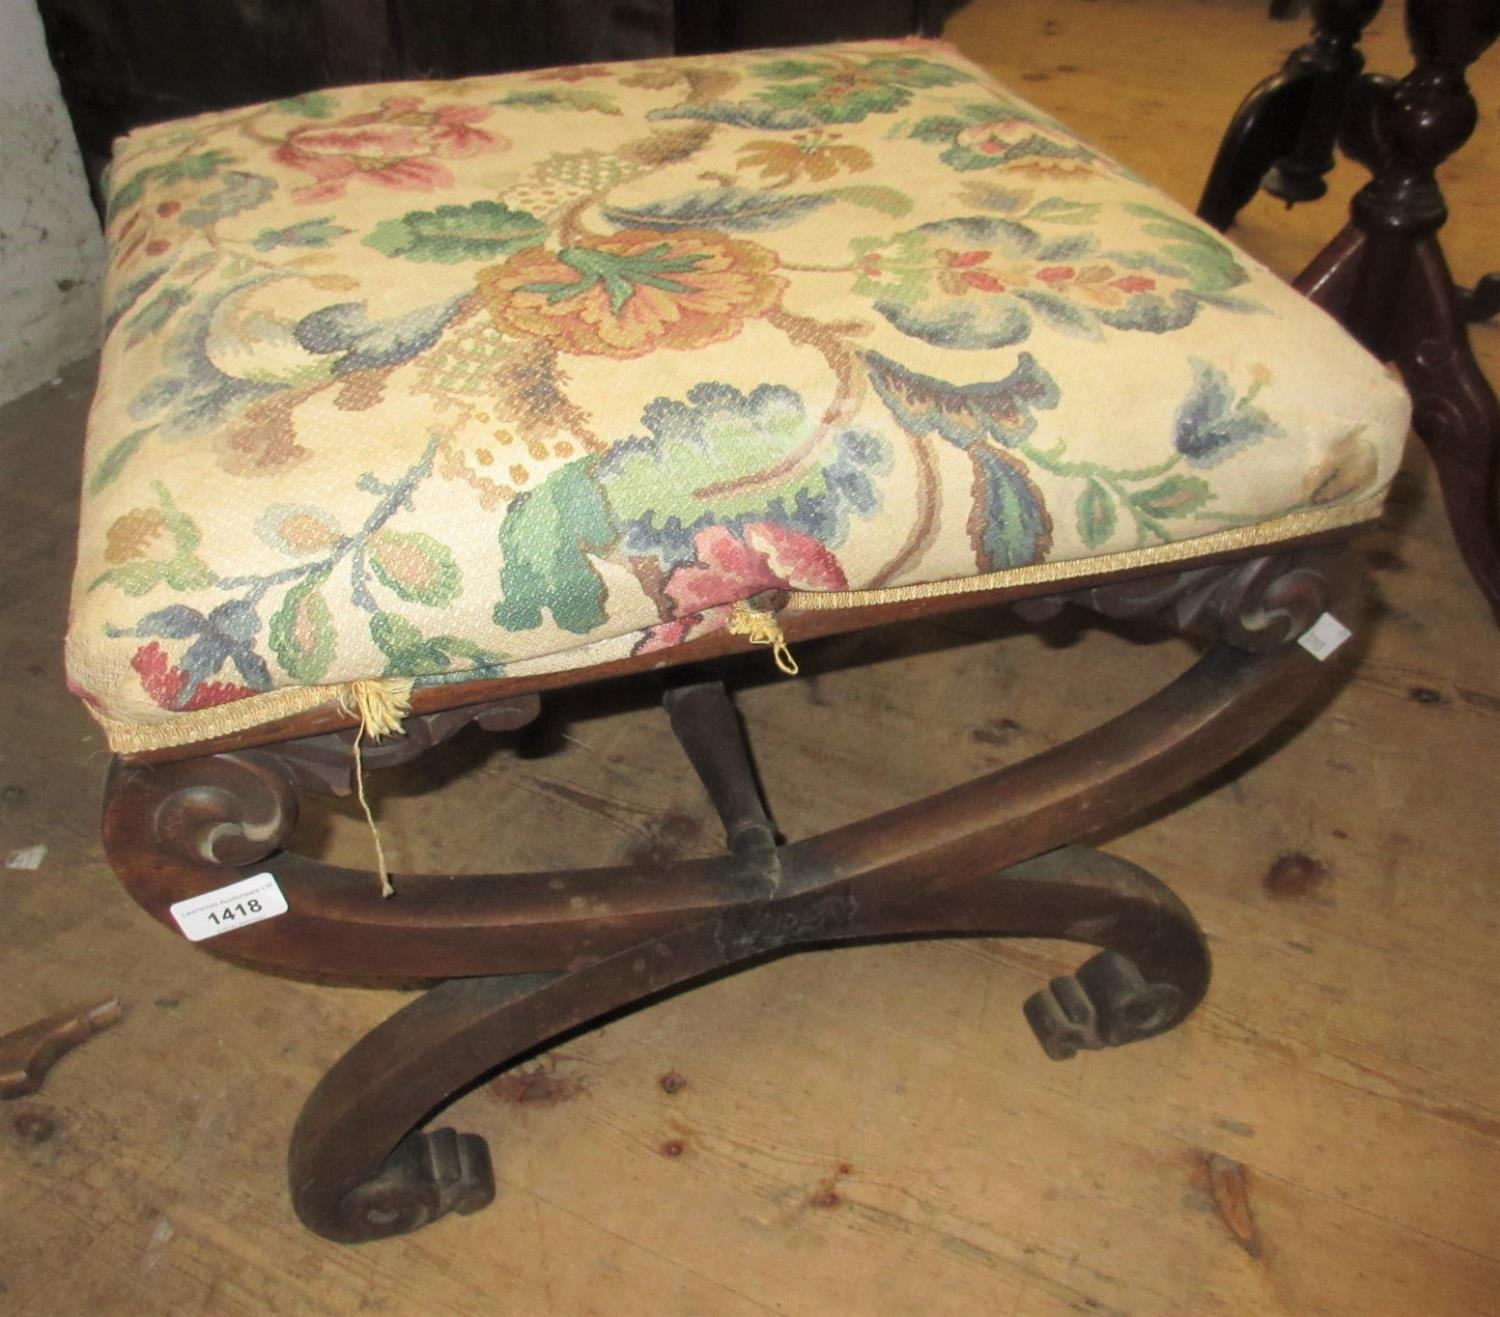 19th Century mahogany crossover stool having overstuffed seat with floral upholstery, carved details